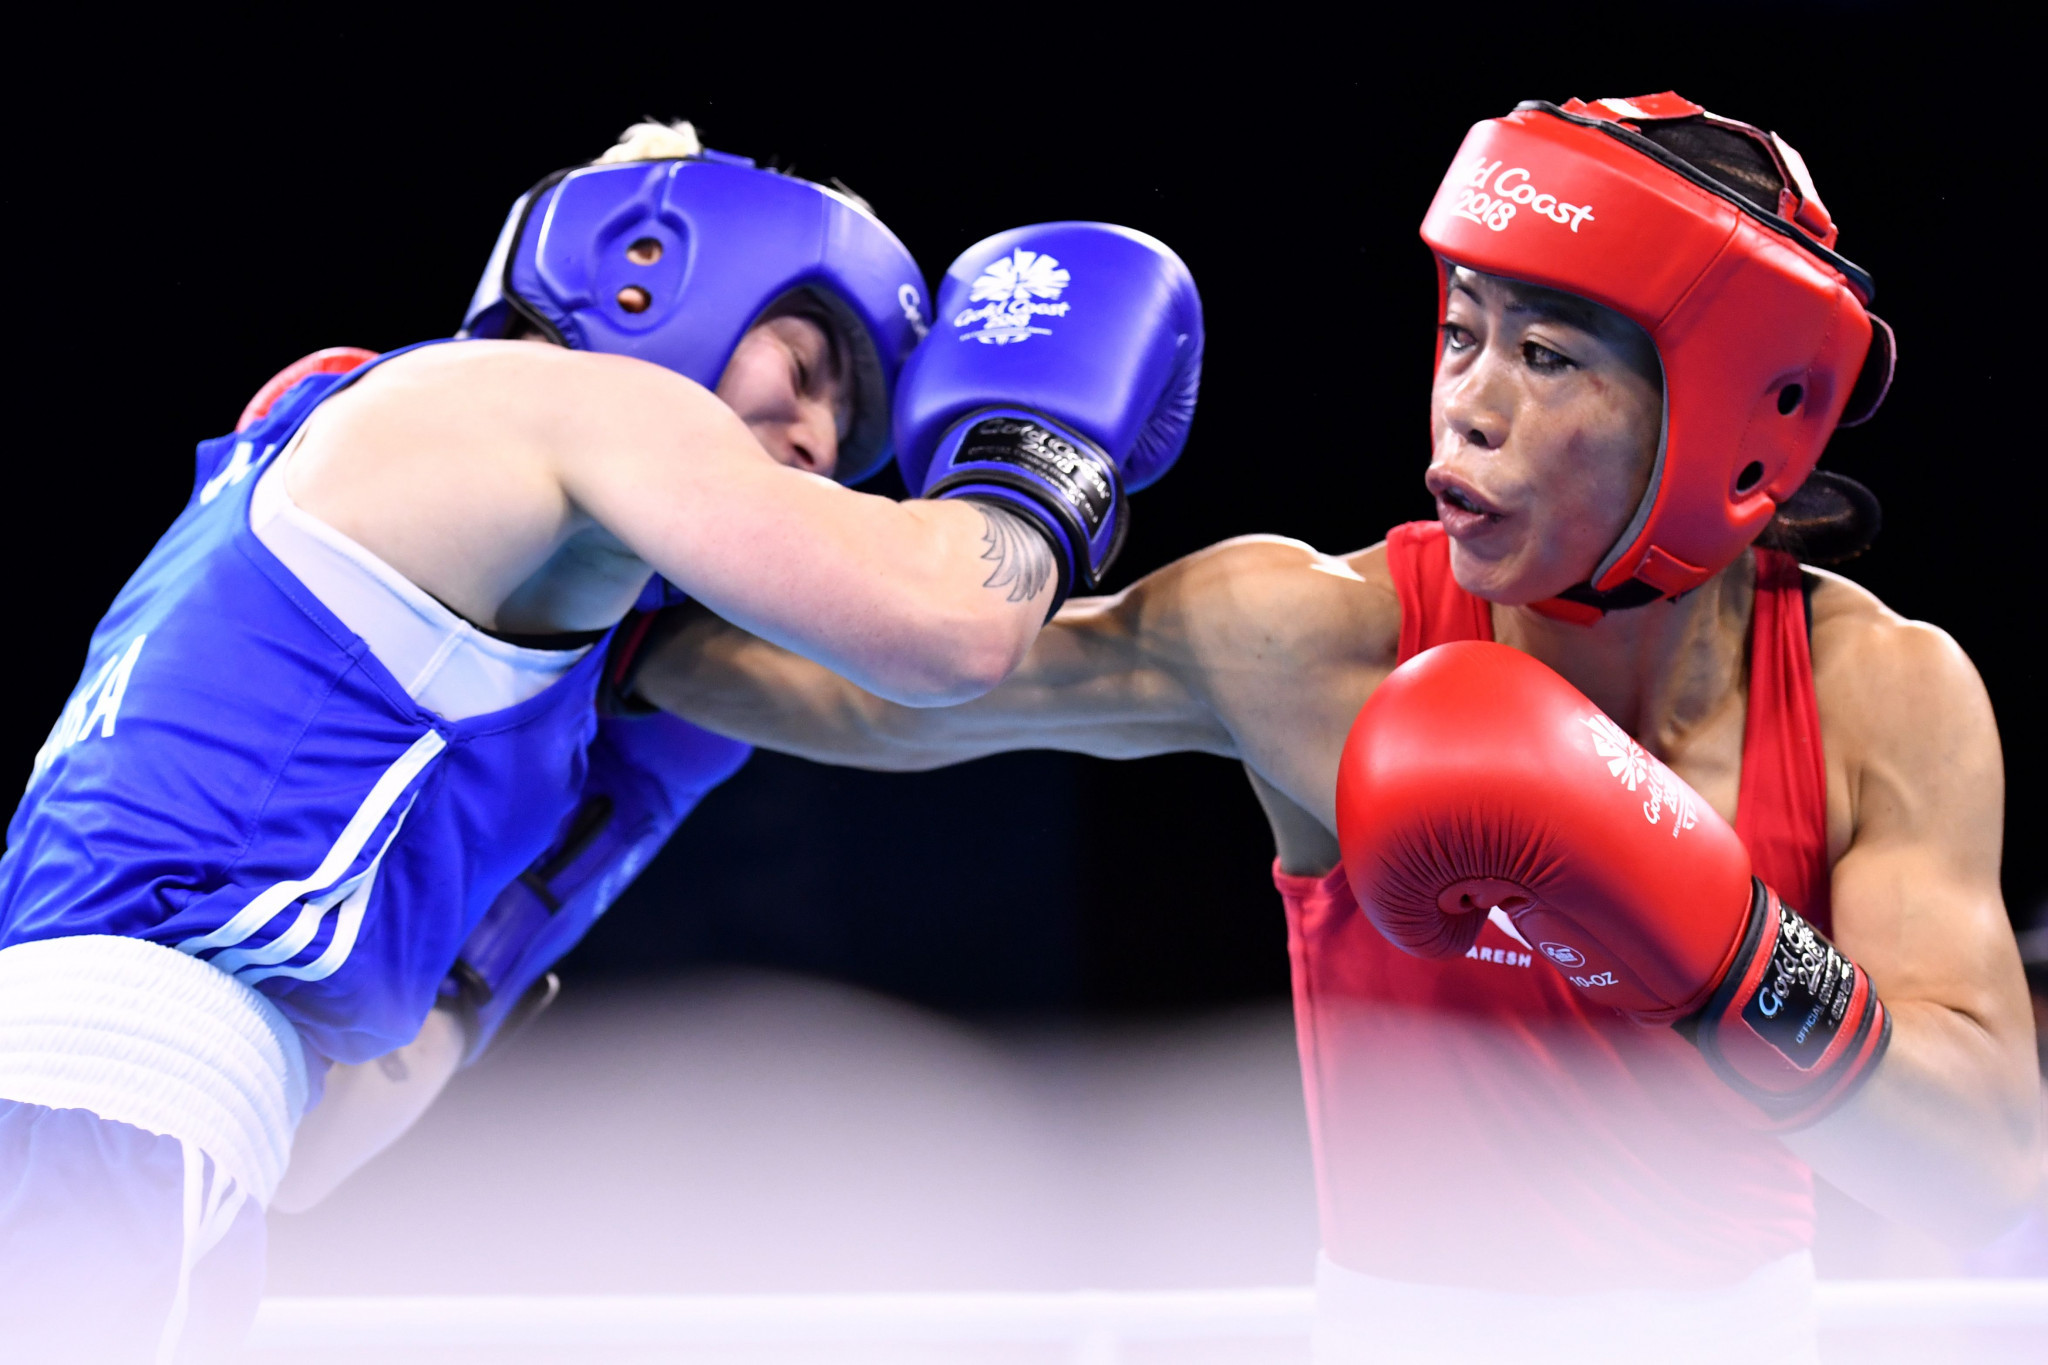 Five-time world champion Kom pulls out of India's boxing team for 2018 Asian Games